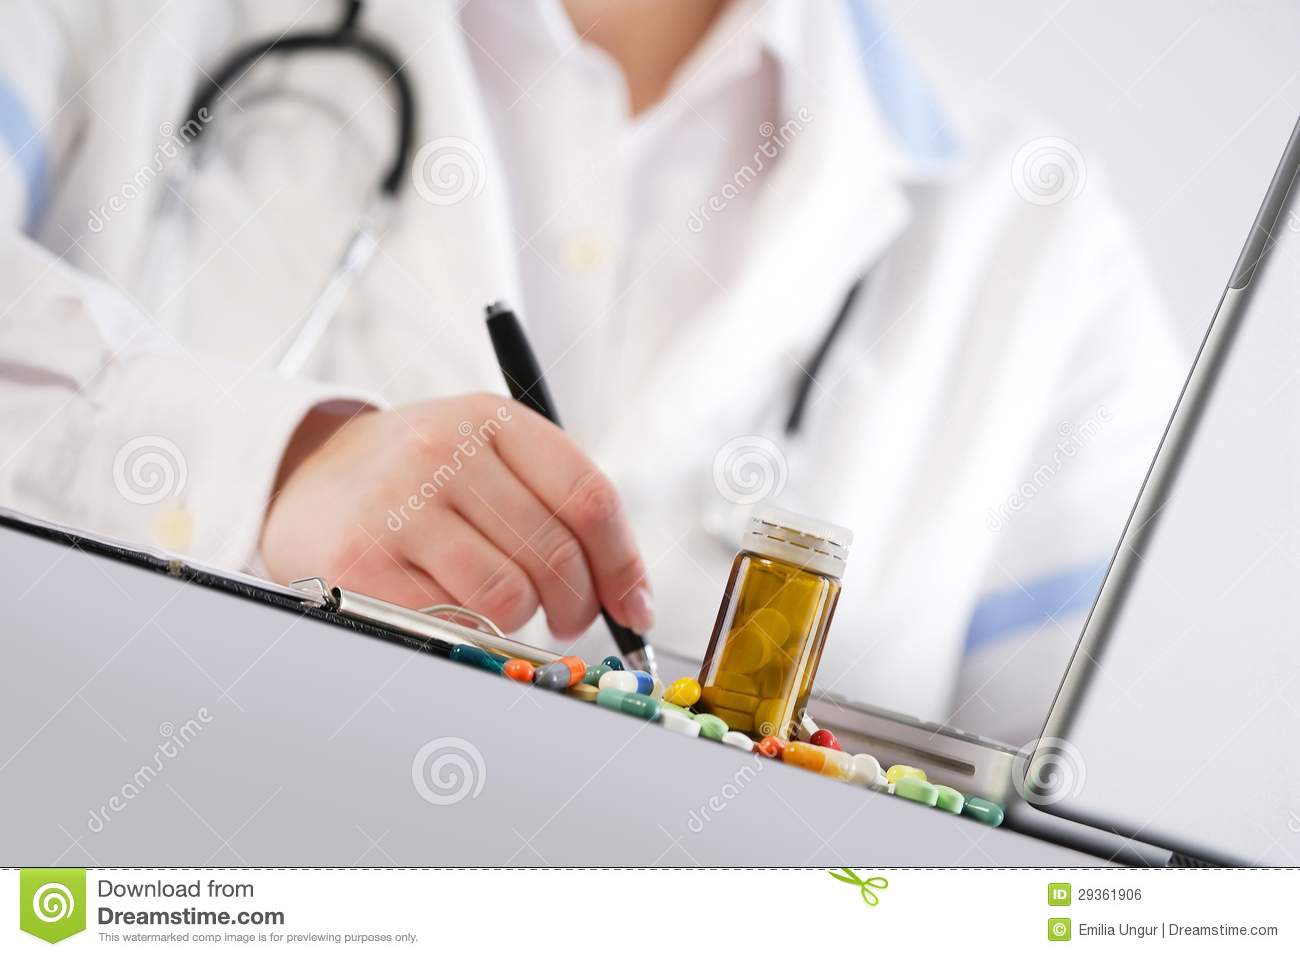 FAMILY DOCTOR AWAY FROM THE OFFICE?